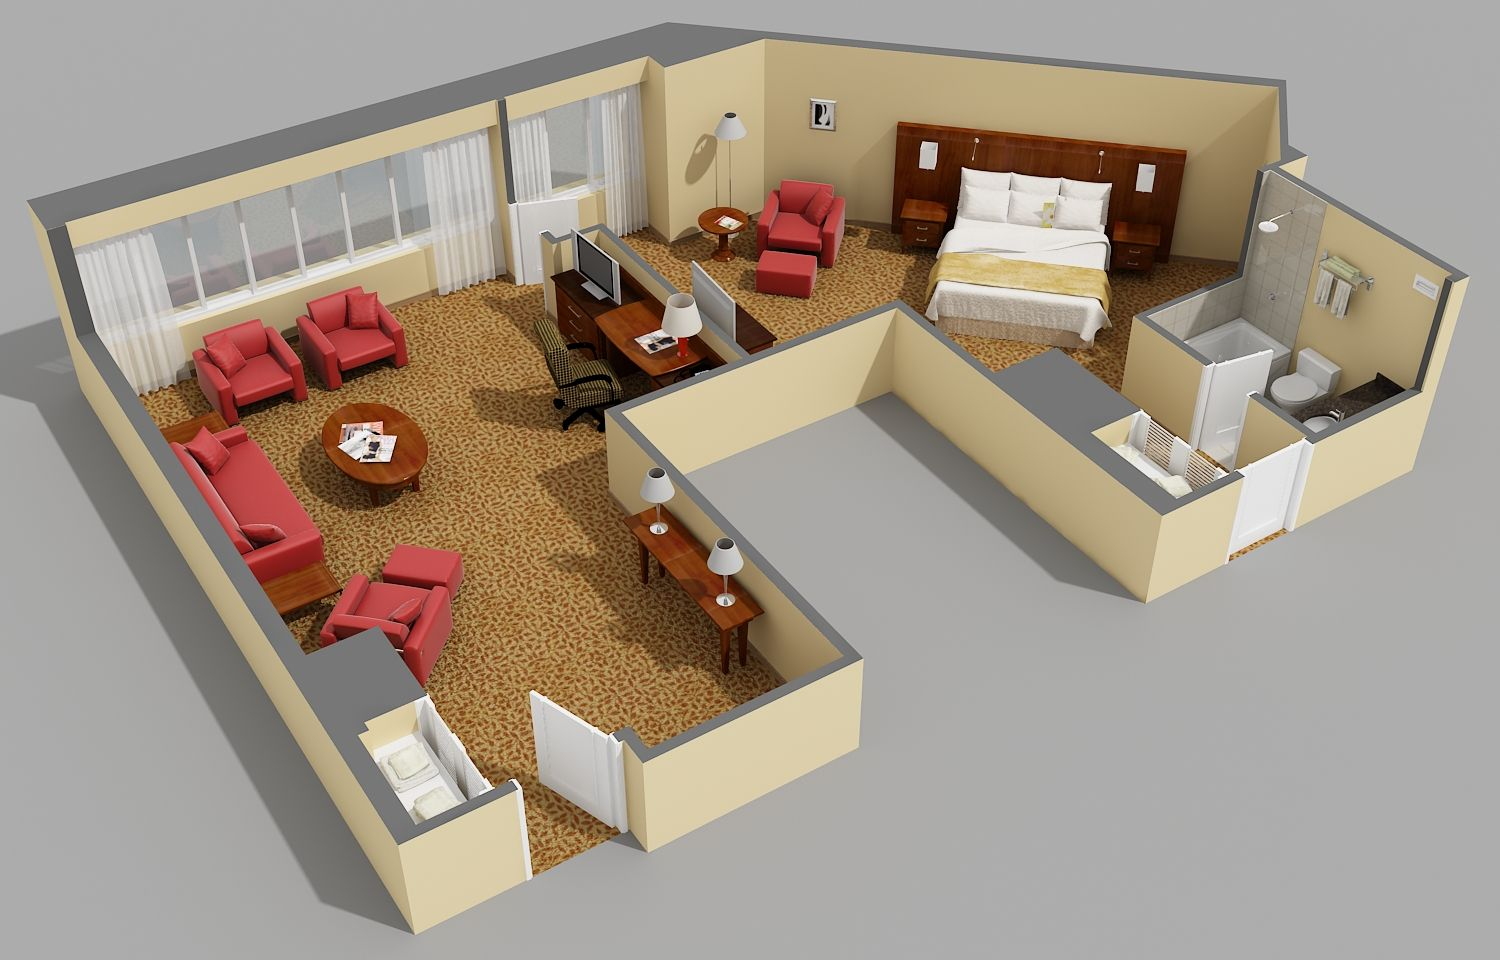 3d Floor Plans Used For Hotel Marketing Living Room Planner Hotel Floor Plan Hotel Floor